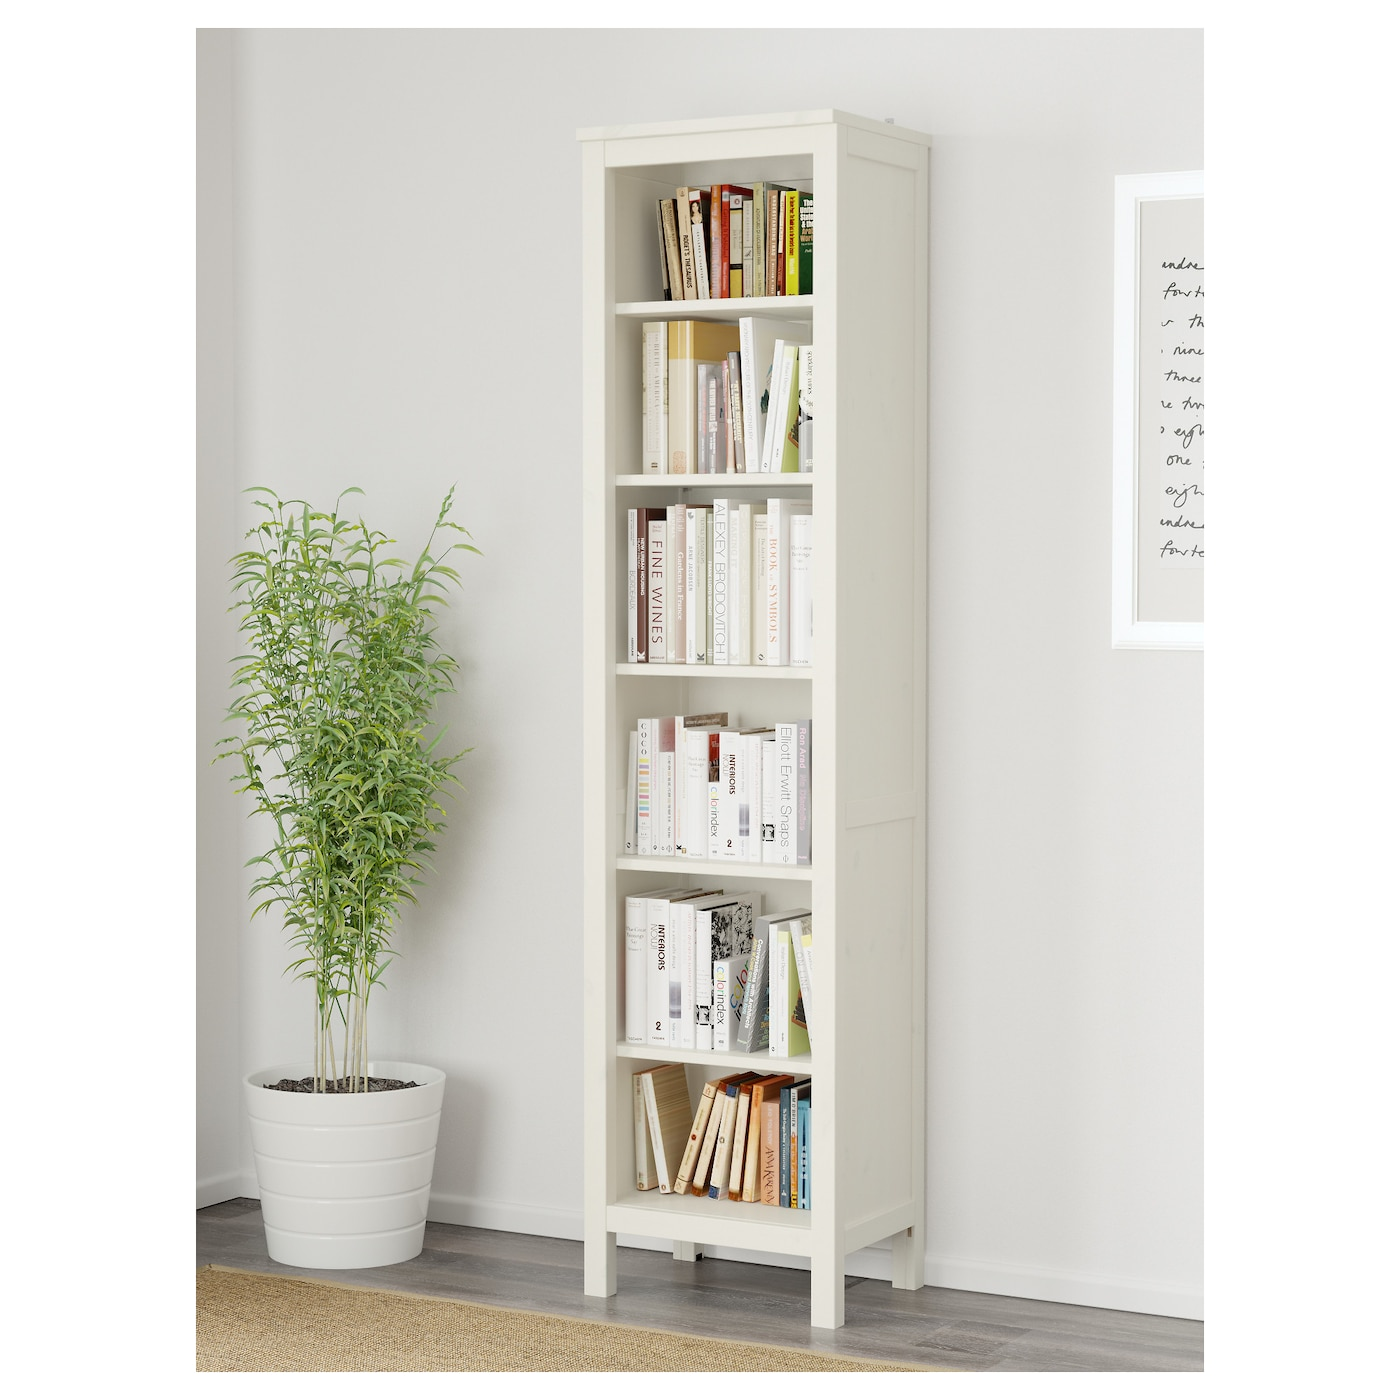 IKEA HEMNES bookcase Solid wood has a natural feel. 1 fixed shelf for high stability.